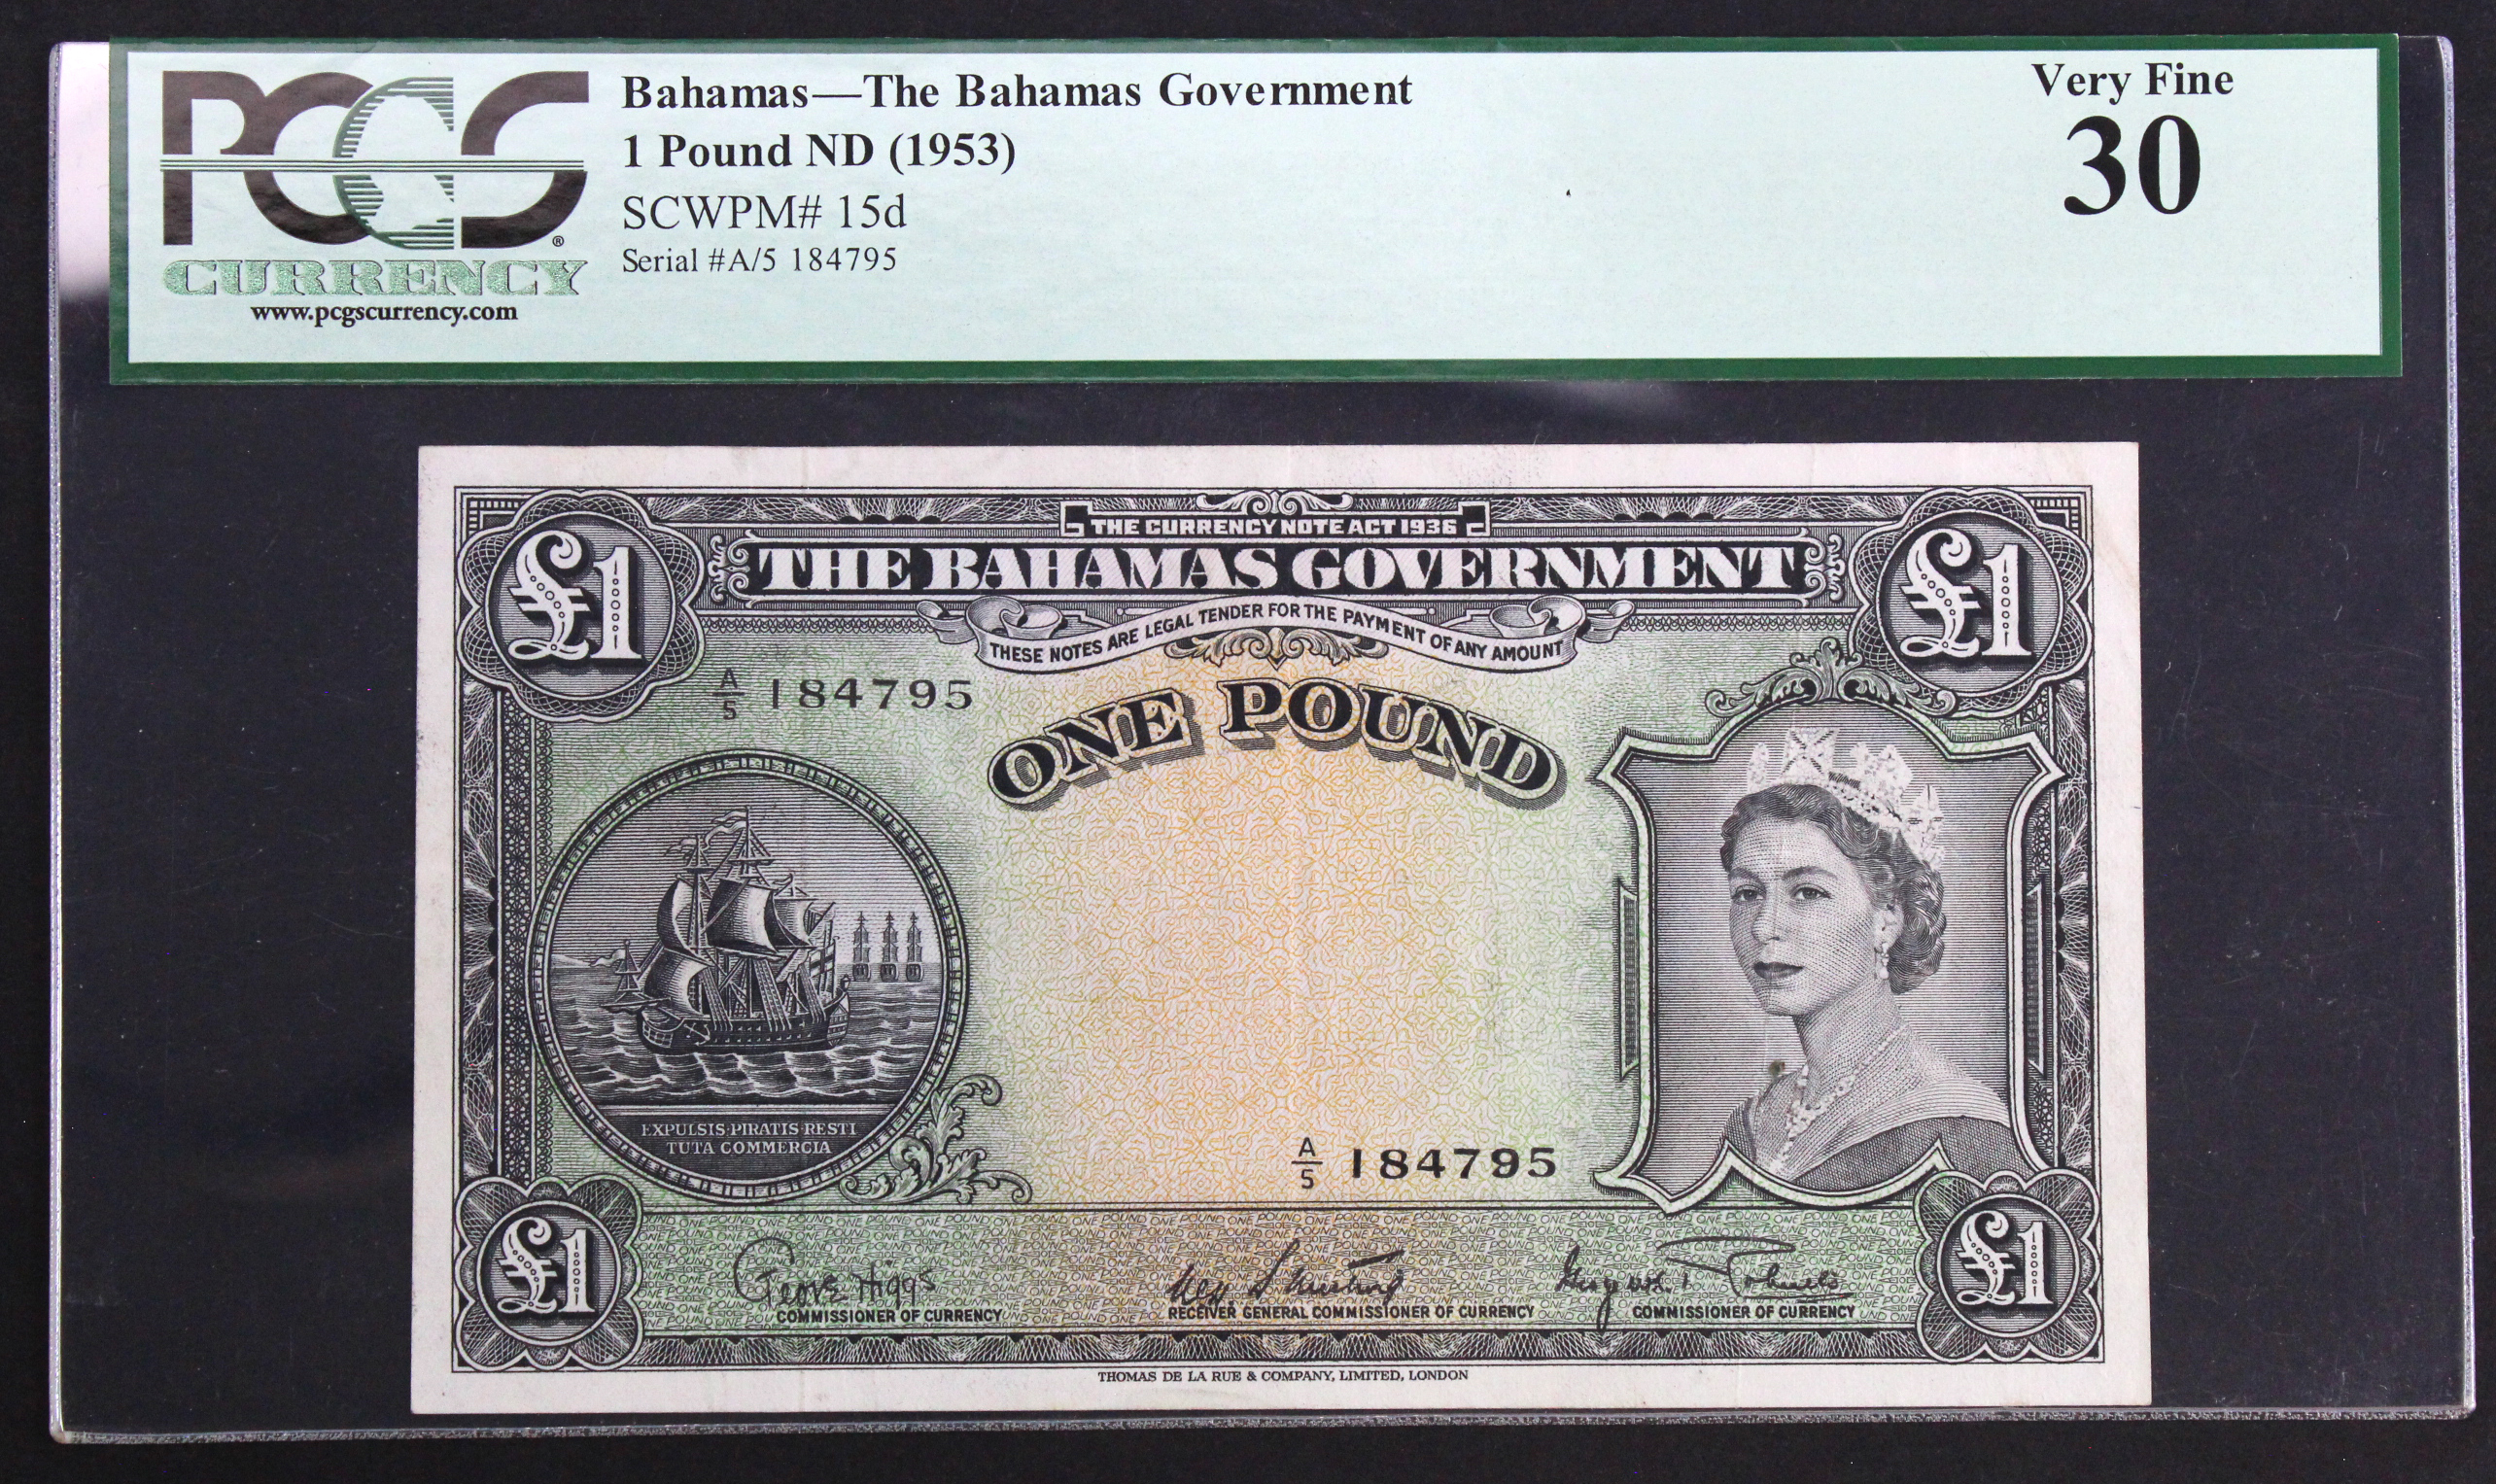 Bahamas 1 Pound issued 1953 (1963), portrait Queen Elizabeth II at right, serial A/5 184795 (TBB